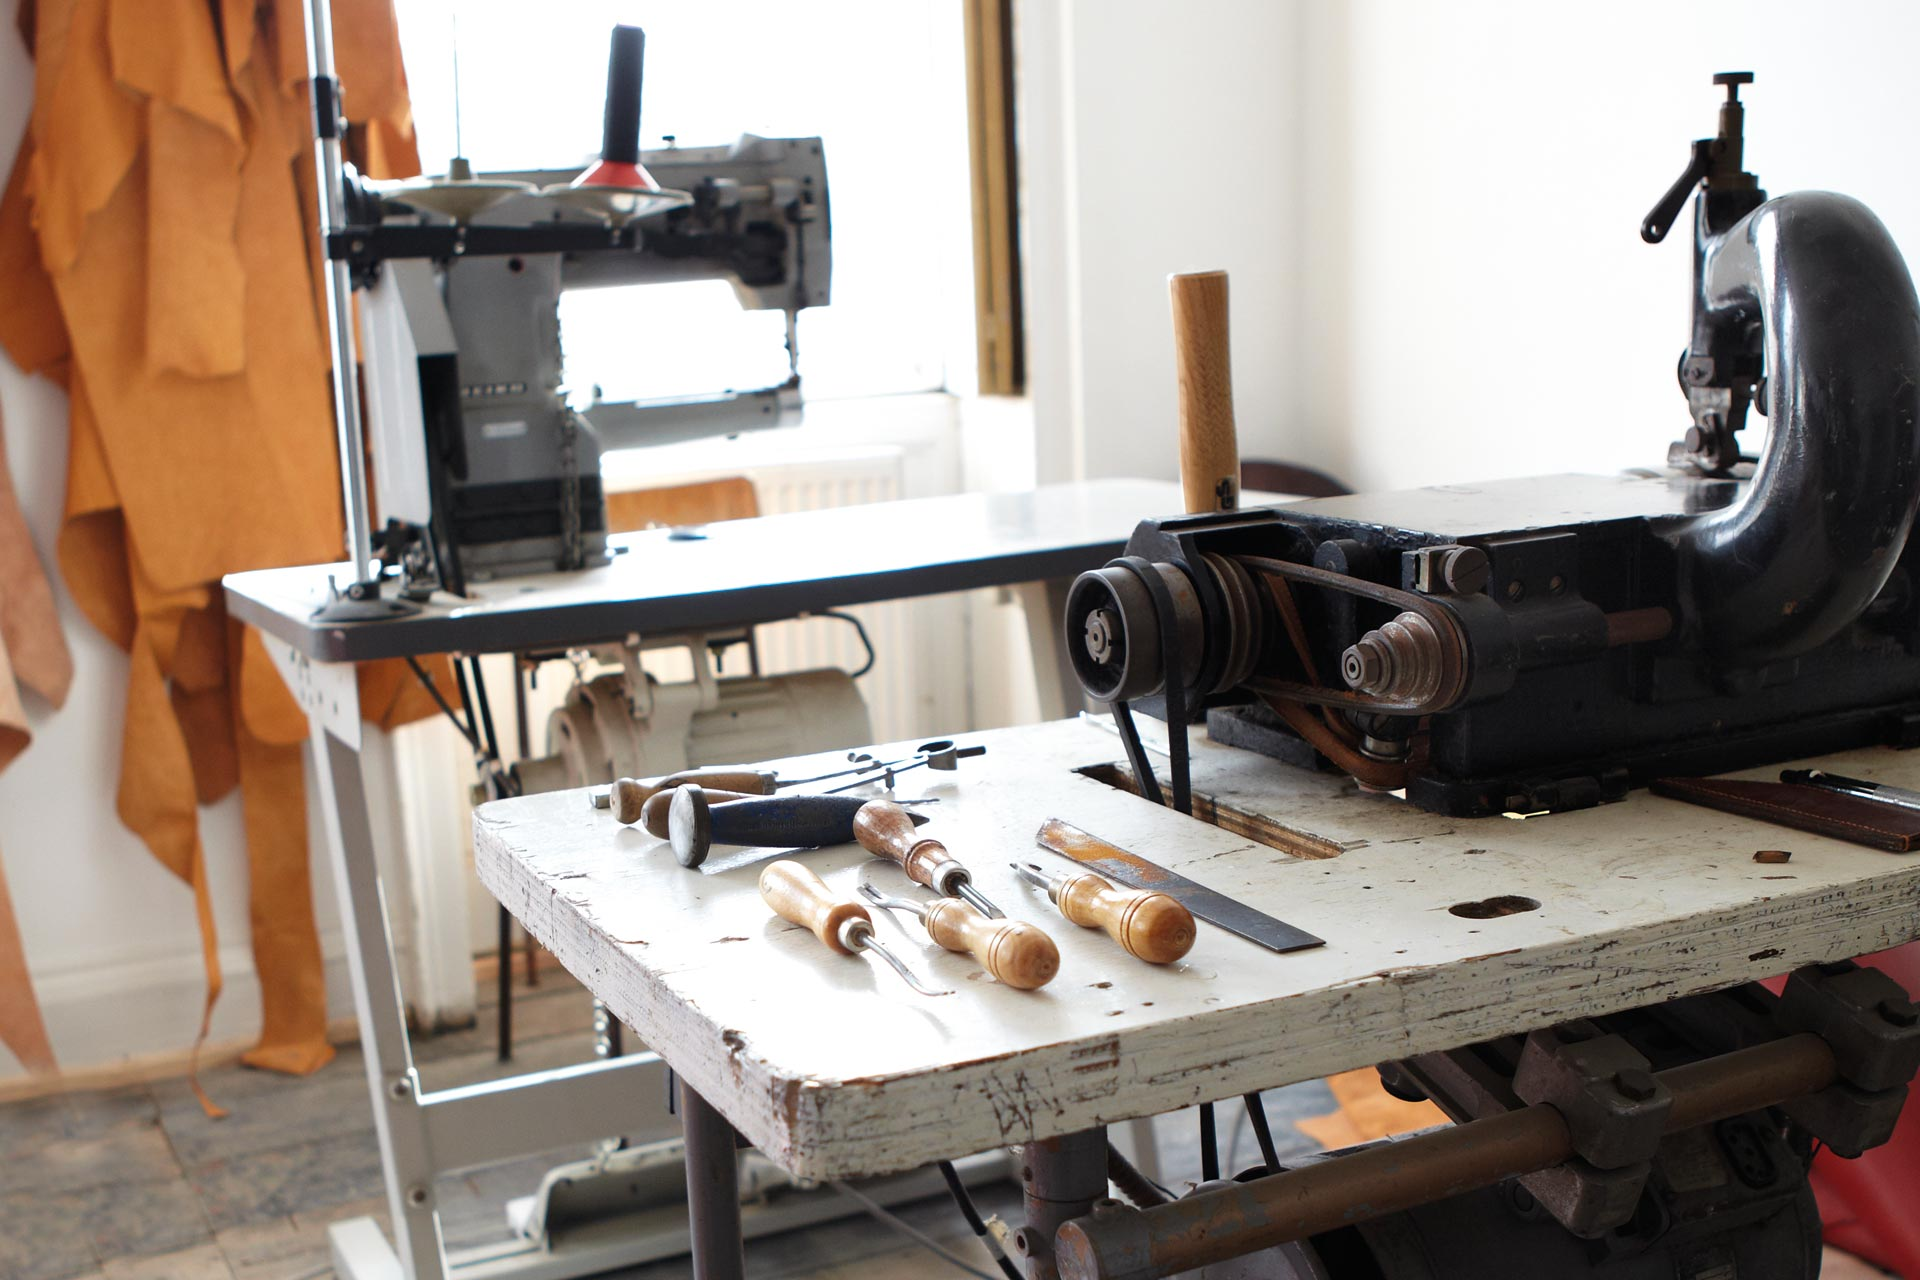 Bespoke & Bounds' Leather Working Studio